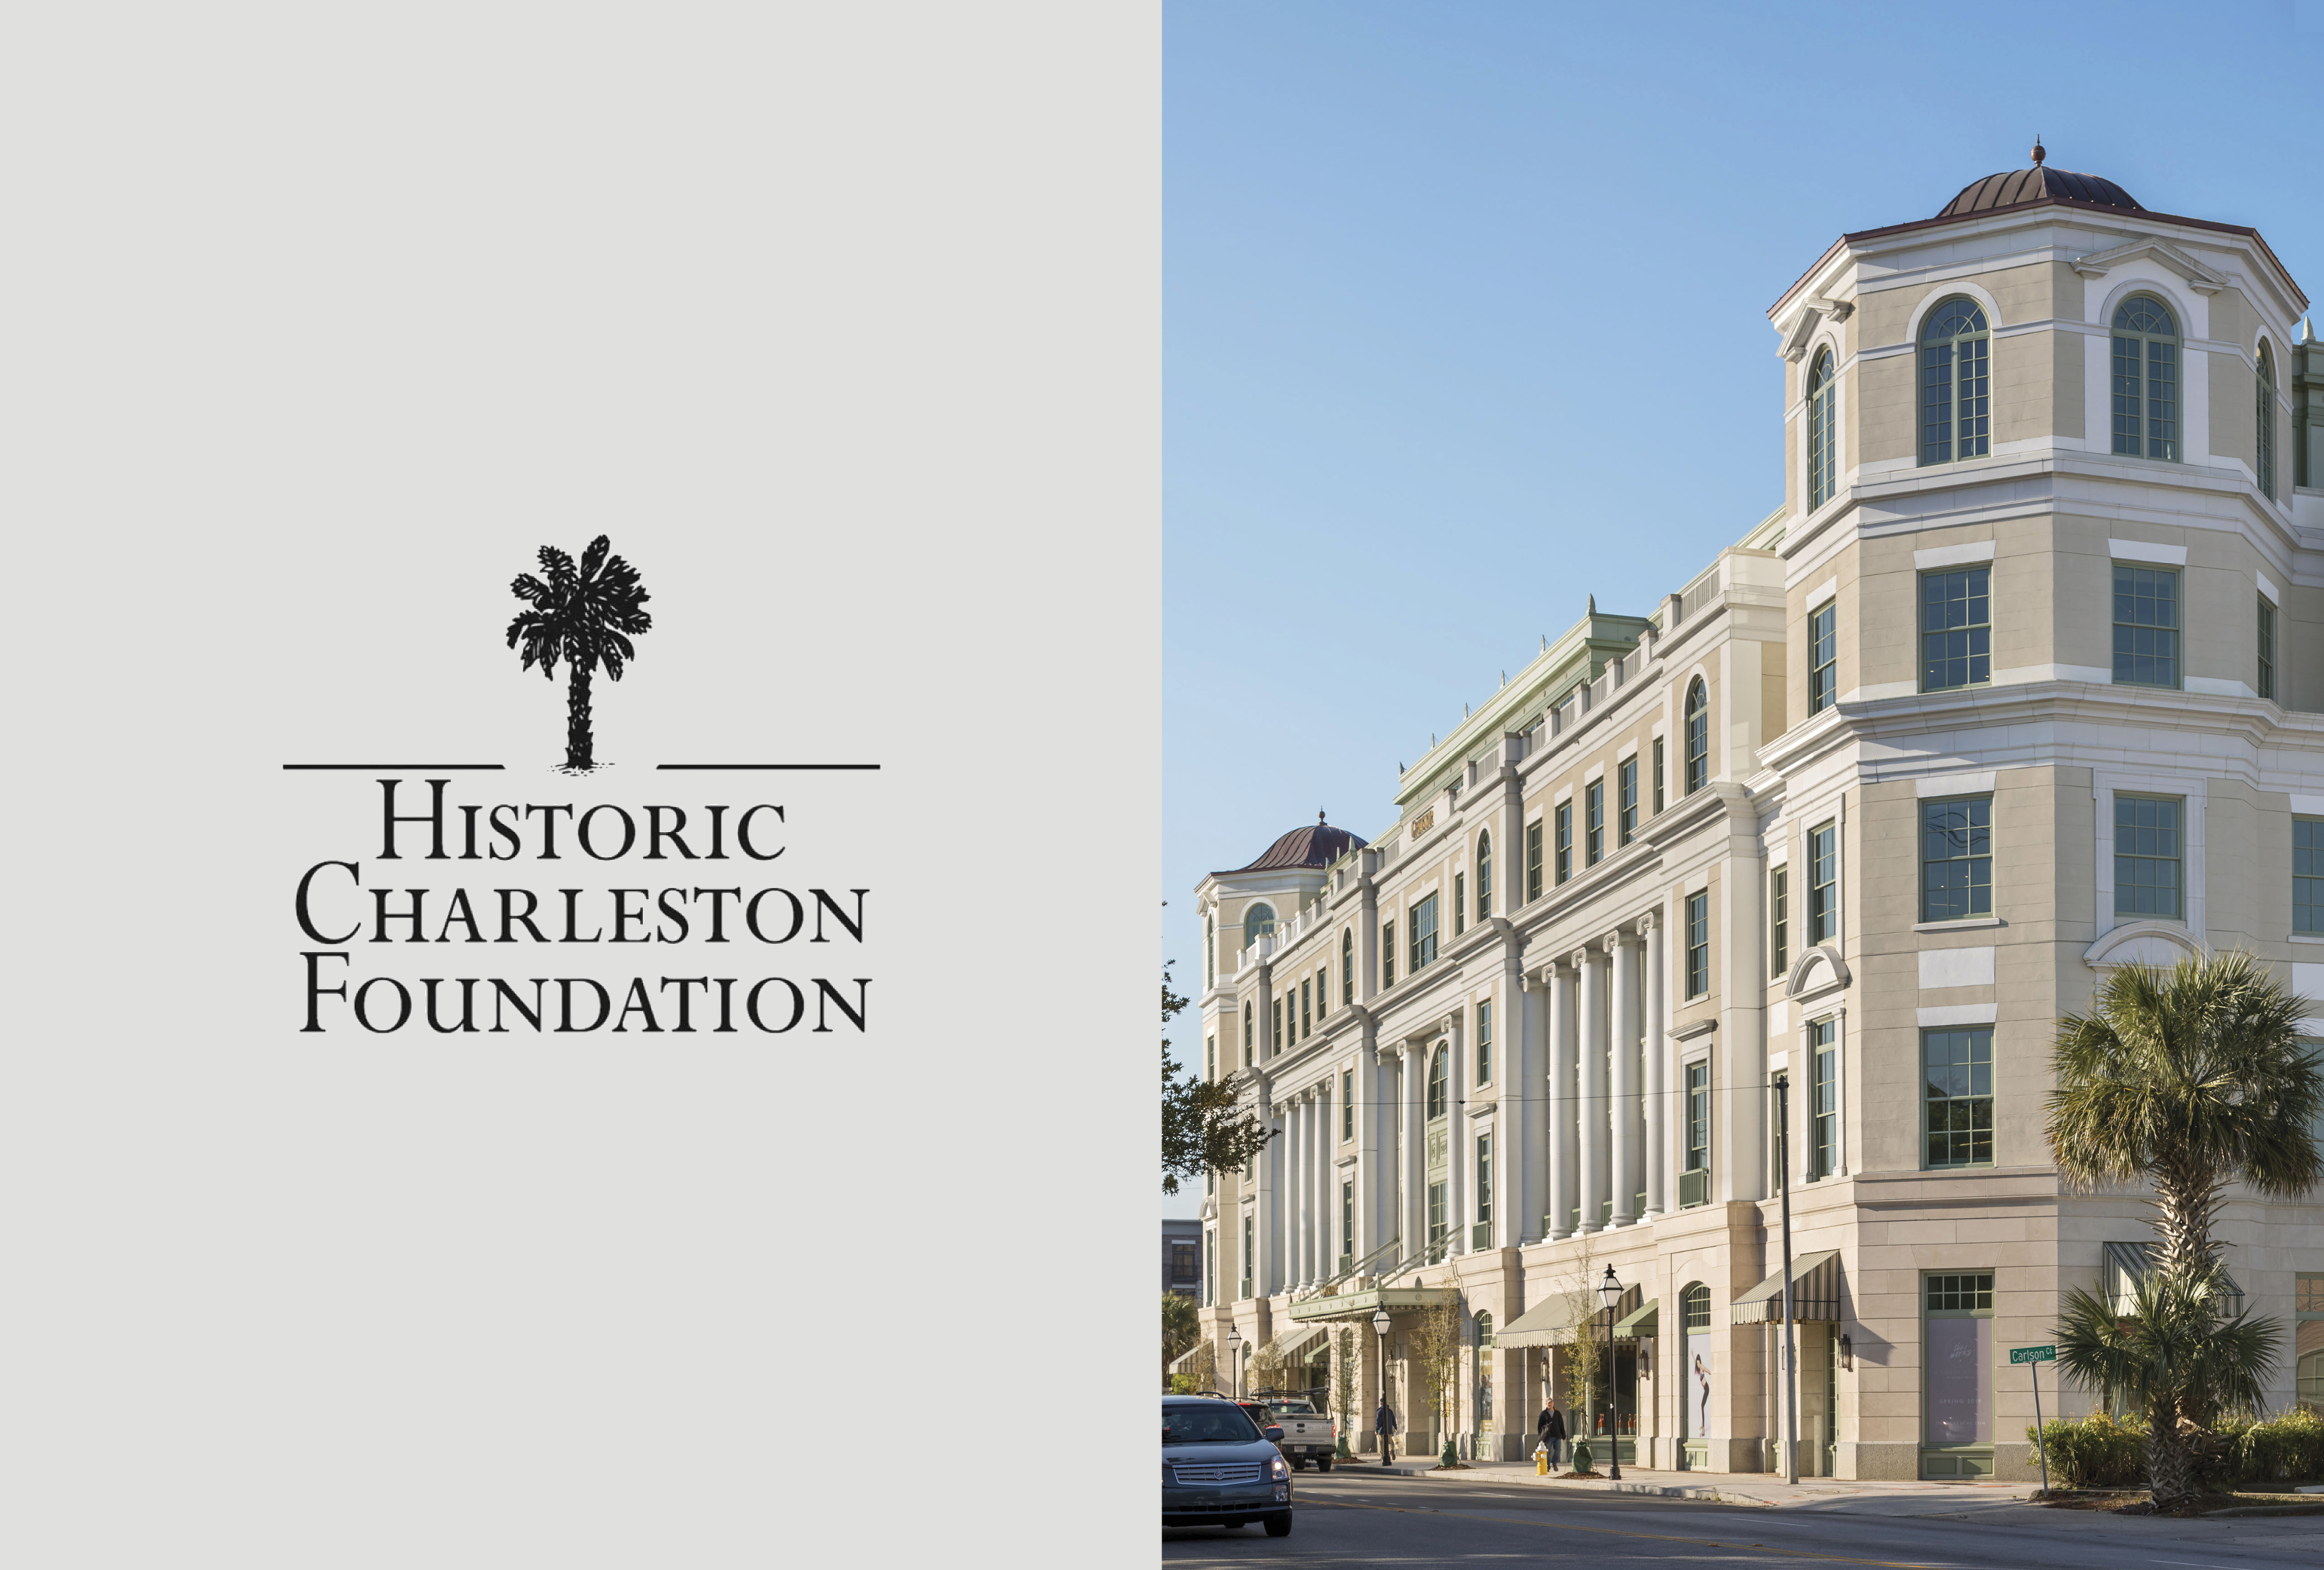 Courier Square Honored With Historic Charleston Foundation Award